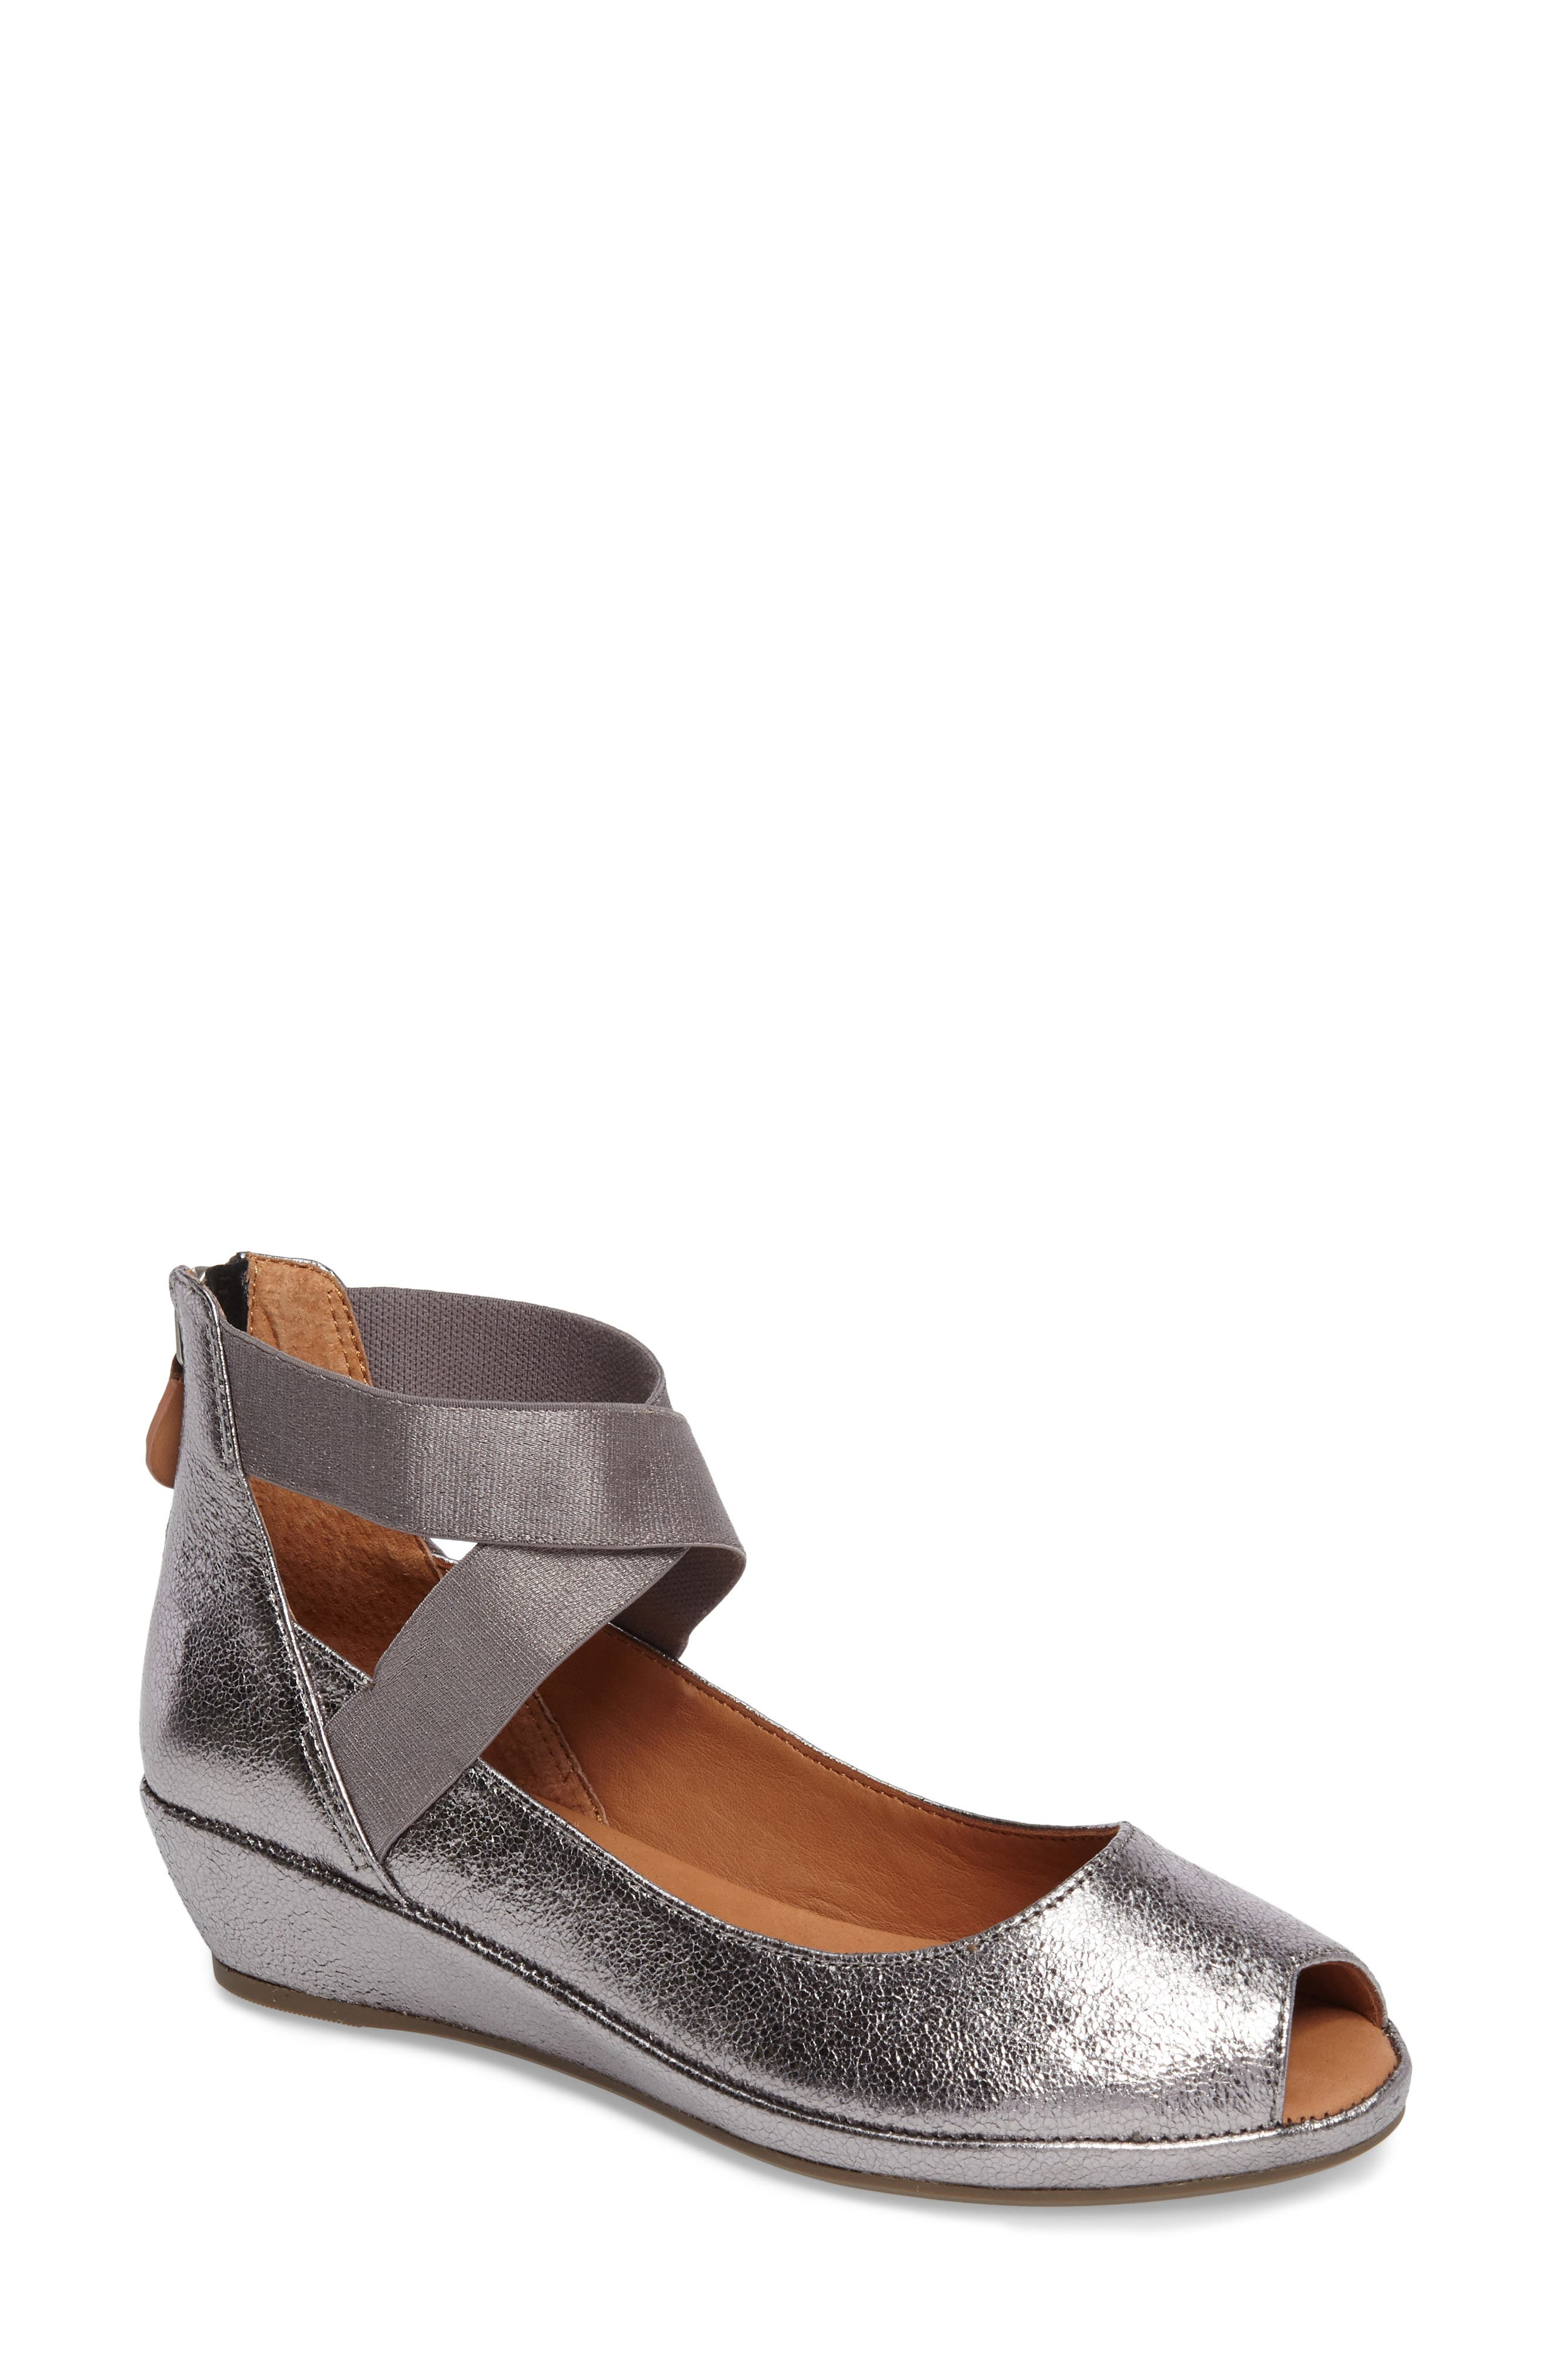 Lisa Wedge Pump,                             Main thumbnail 1, color,                             Anthracite Leather